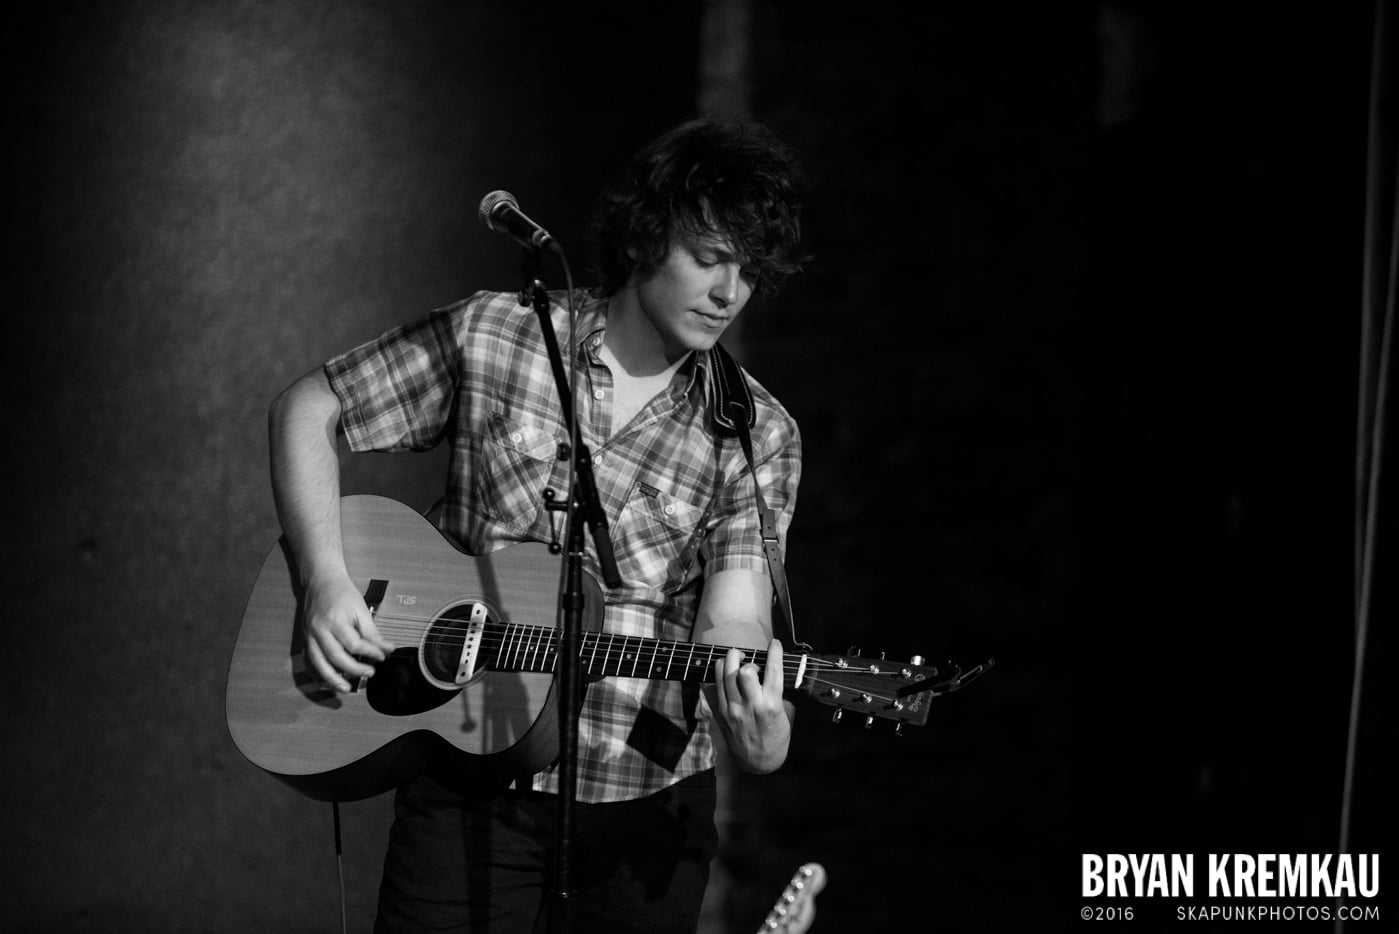 Trapper Schoepp @ City Winery, NYC - 6.26.13 (16)